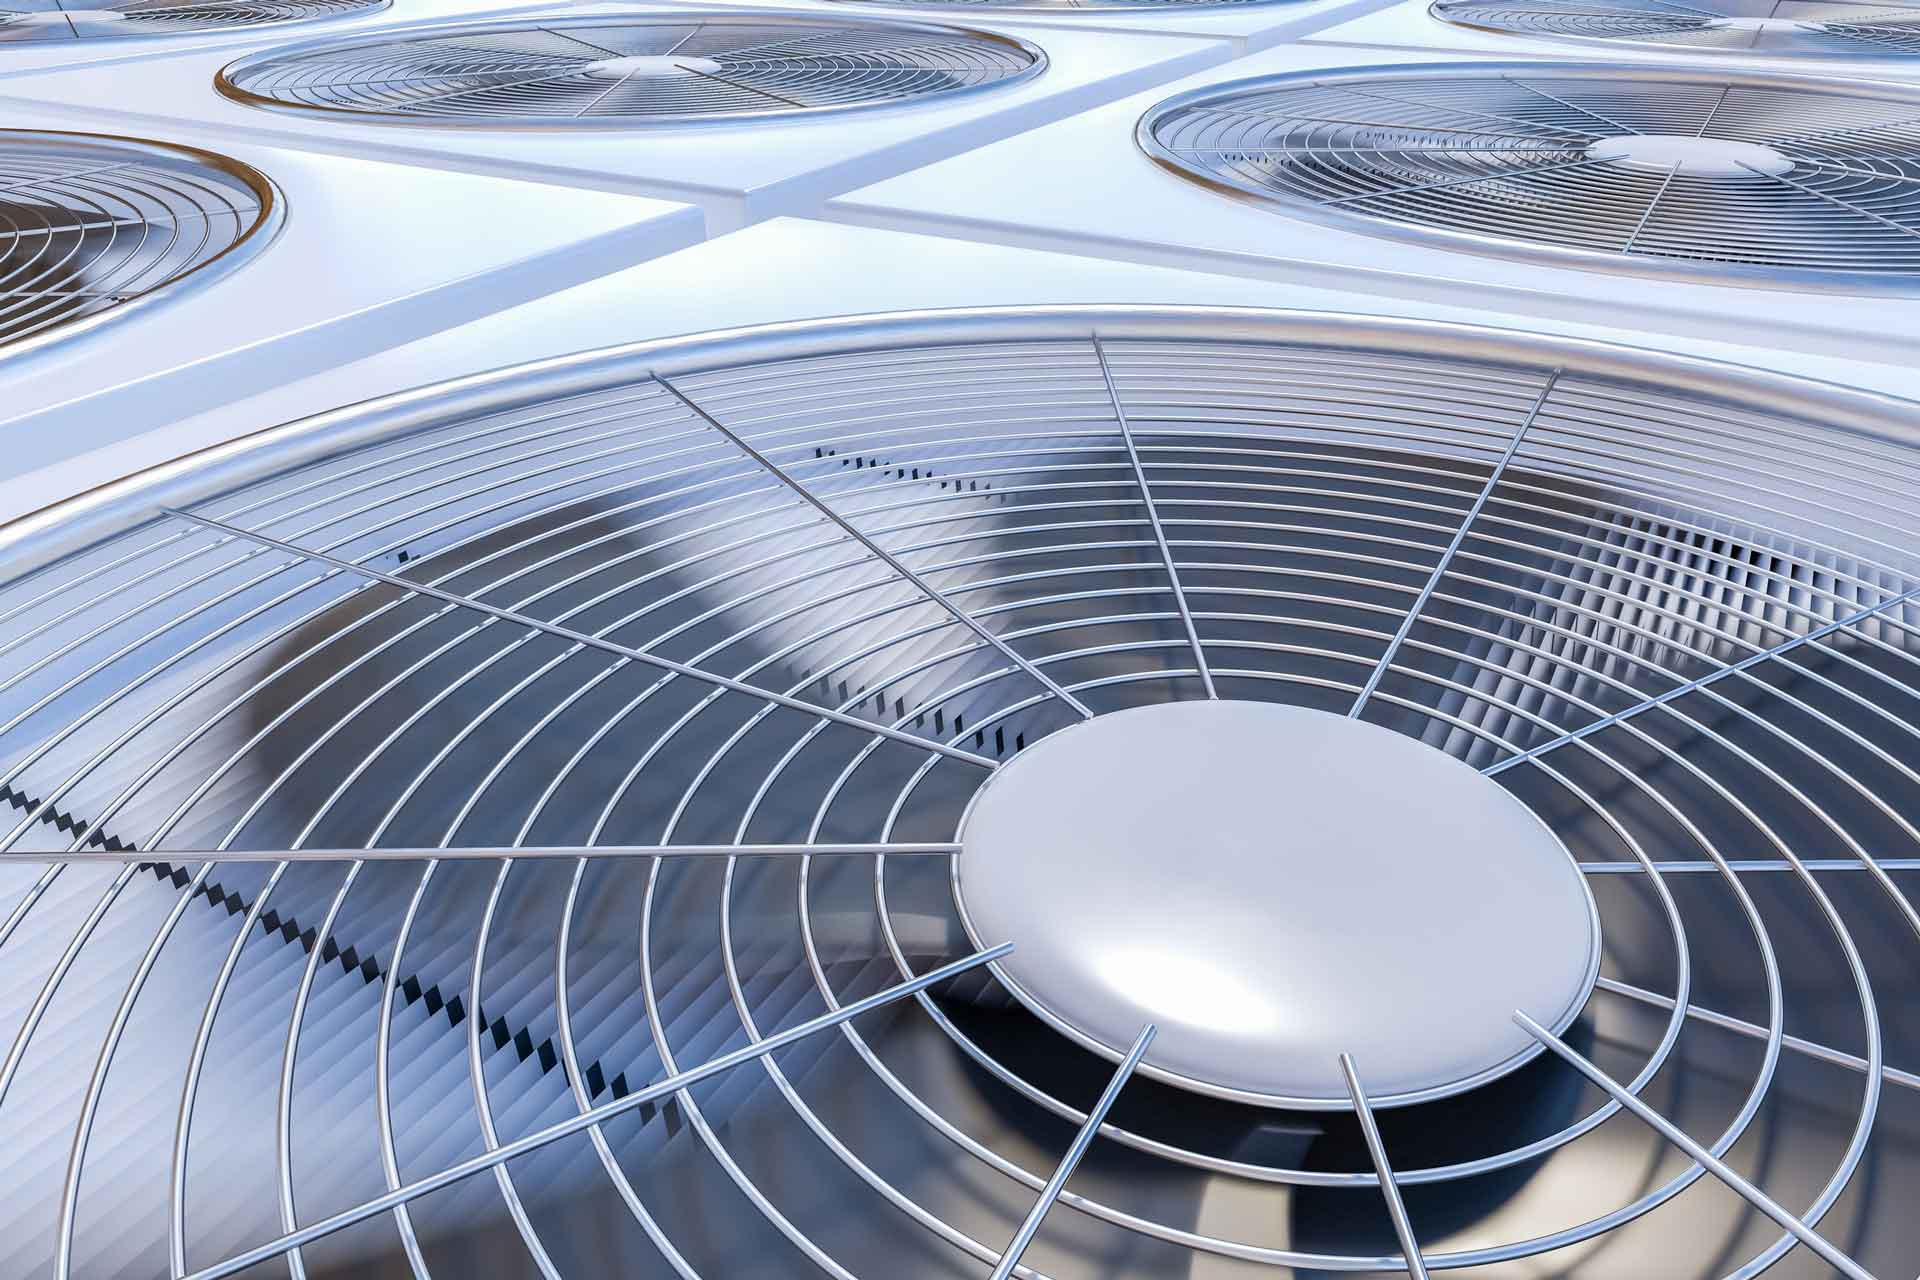 6 Telltale Signs it's Time for an Air Conditioning Replacement